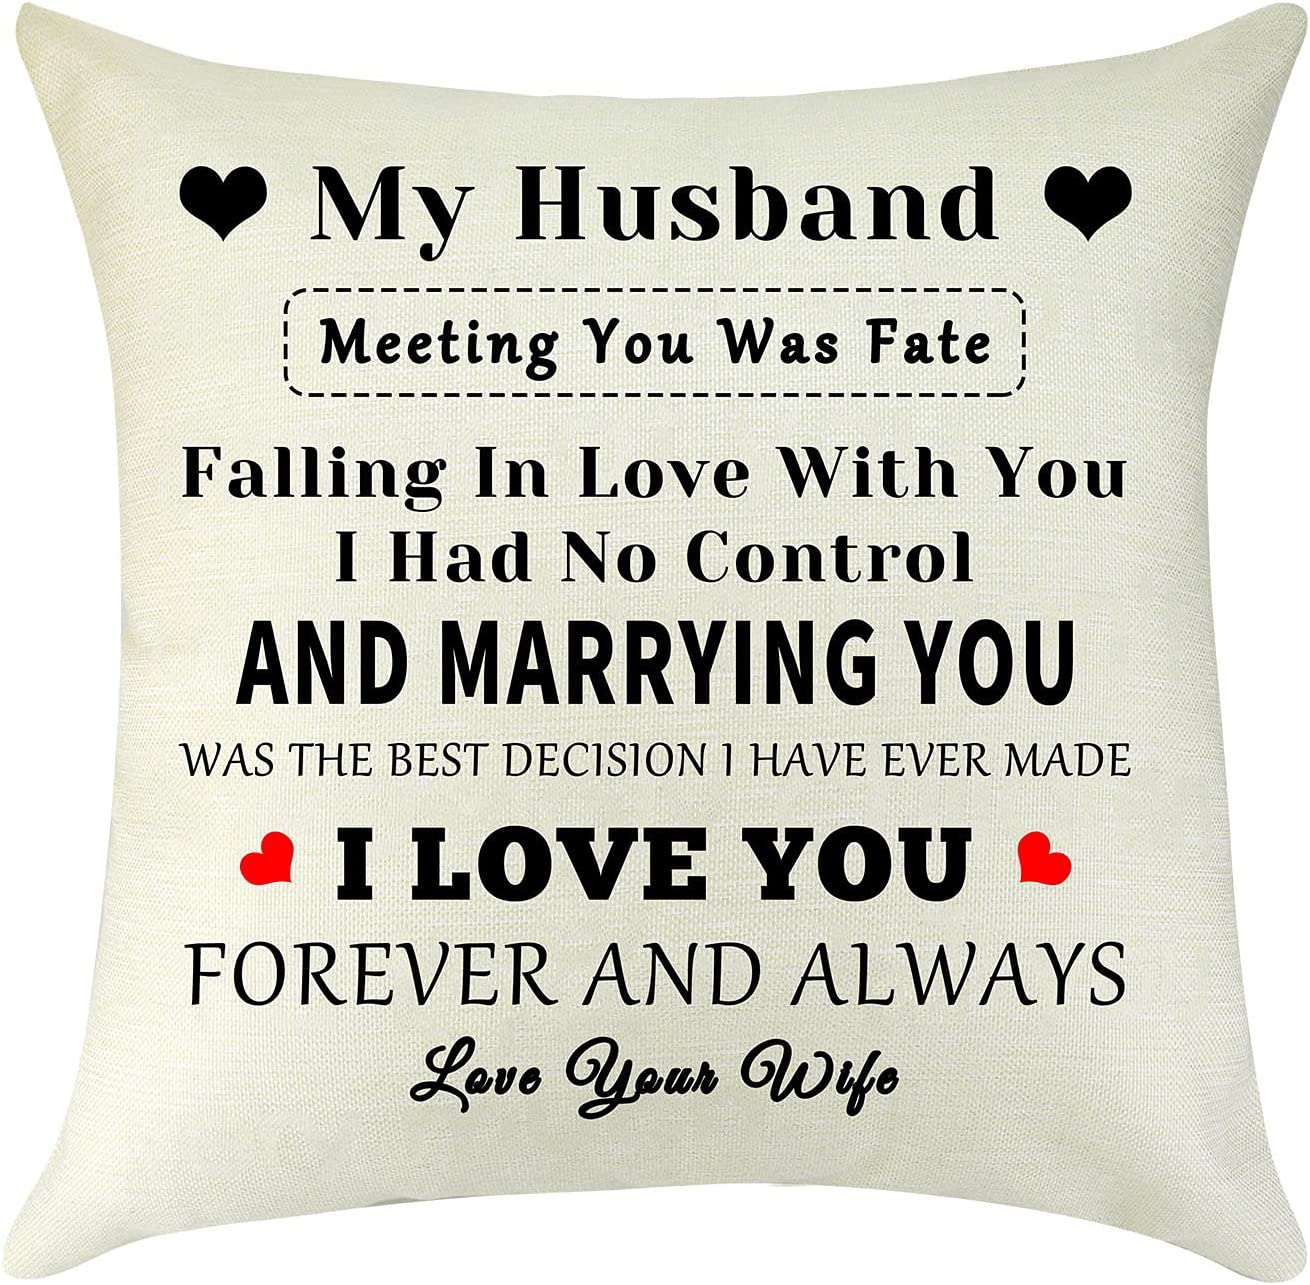 Mikela Husband Birthday Gifts from Wife Pillow Cover Pillow Case to My Husband I Love You Gift to My Men Valentine's Day Gift Cotton Linen Square Cushion Cover for Sofa Bedroom Decorative